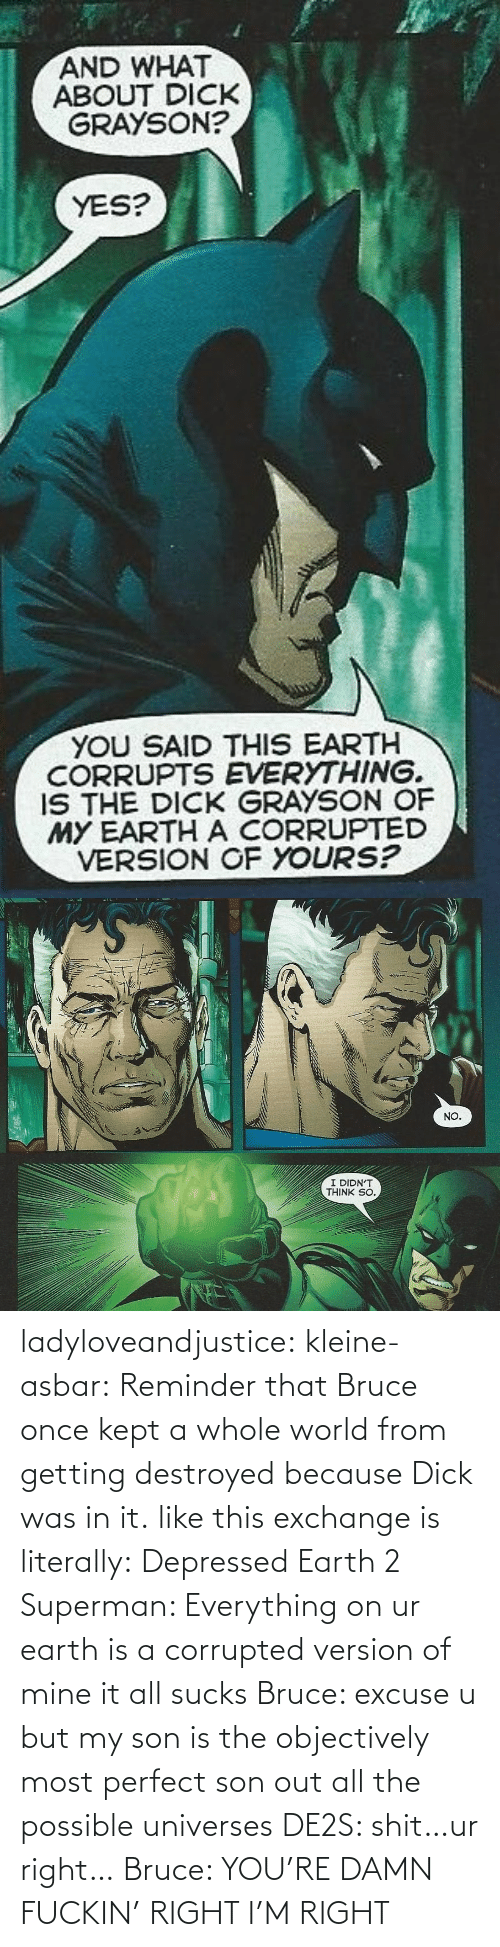 Earth: ladyloveandjustice:  kleine-asbar: Reminder that Bruce once kept a whole world from getting destroyed because Dick was in it. like this exchange is literally: Depressed Earth 2 Superman: Everything on ur earth is a corrupted version of mine it all sucks Bruce: excuse u but my son is the objectively most perfect son out all the possible universes DE2S: shit…ur right… Bruce: YOU'RE DAMN FUCKIN' RIGHT I'M RIGHT